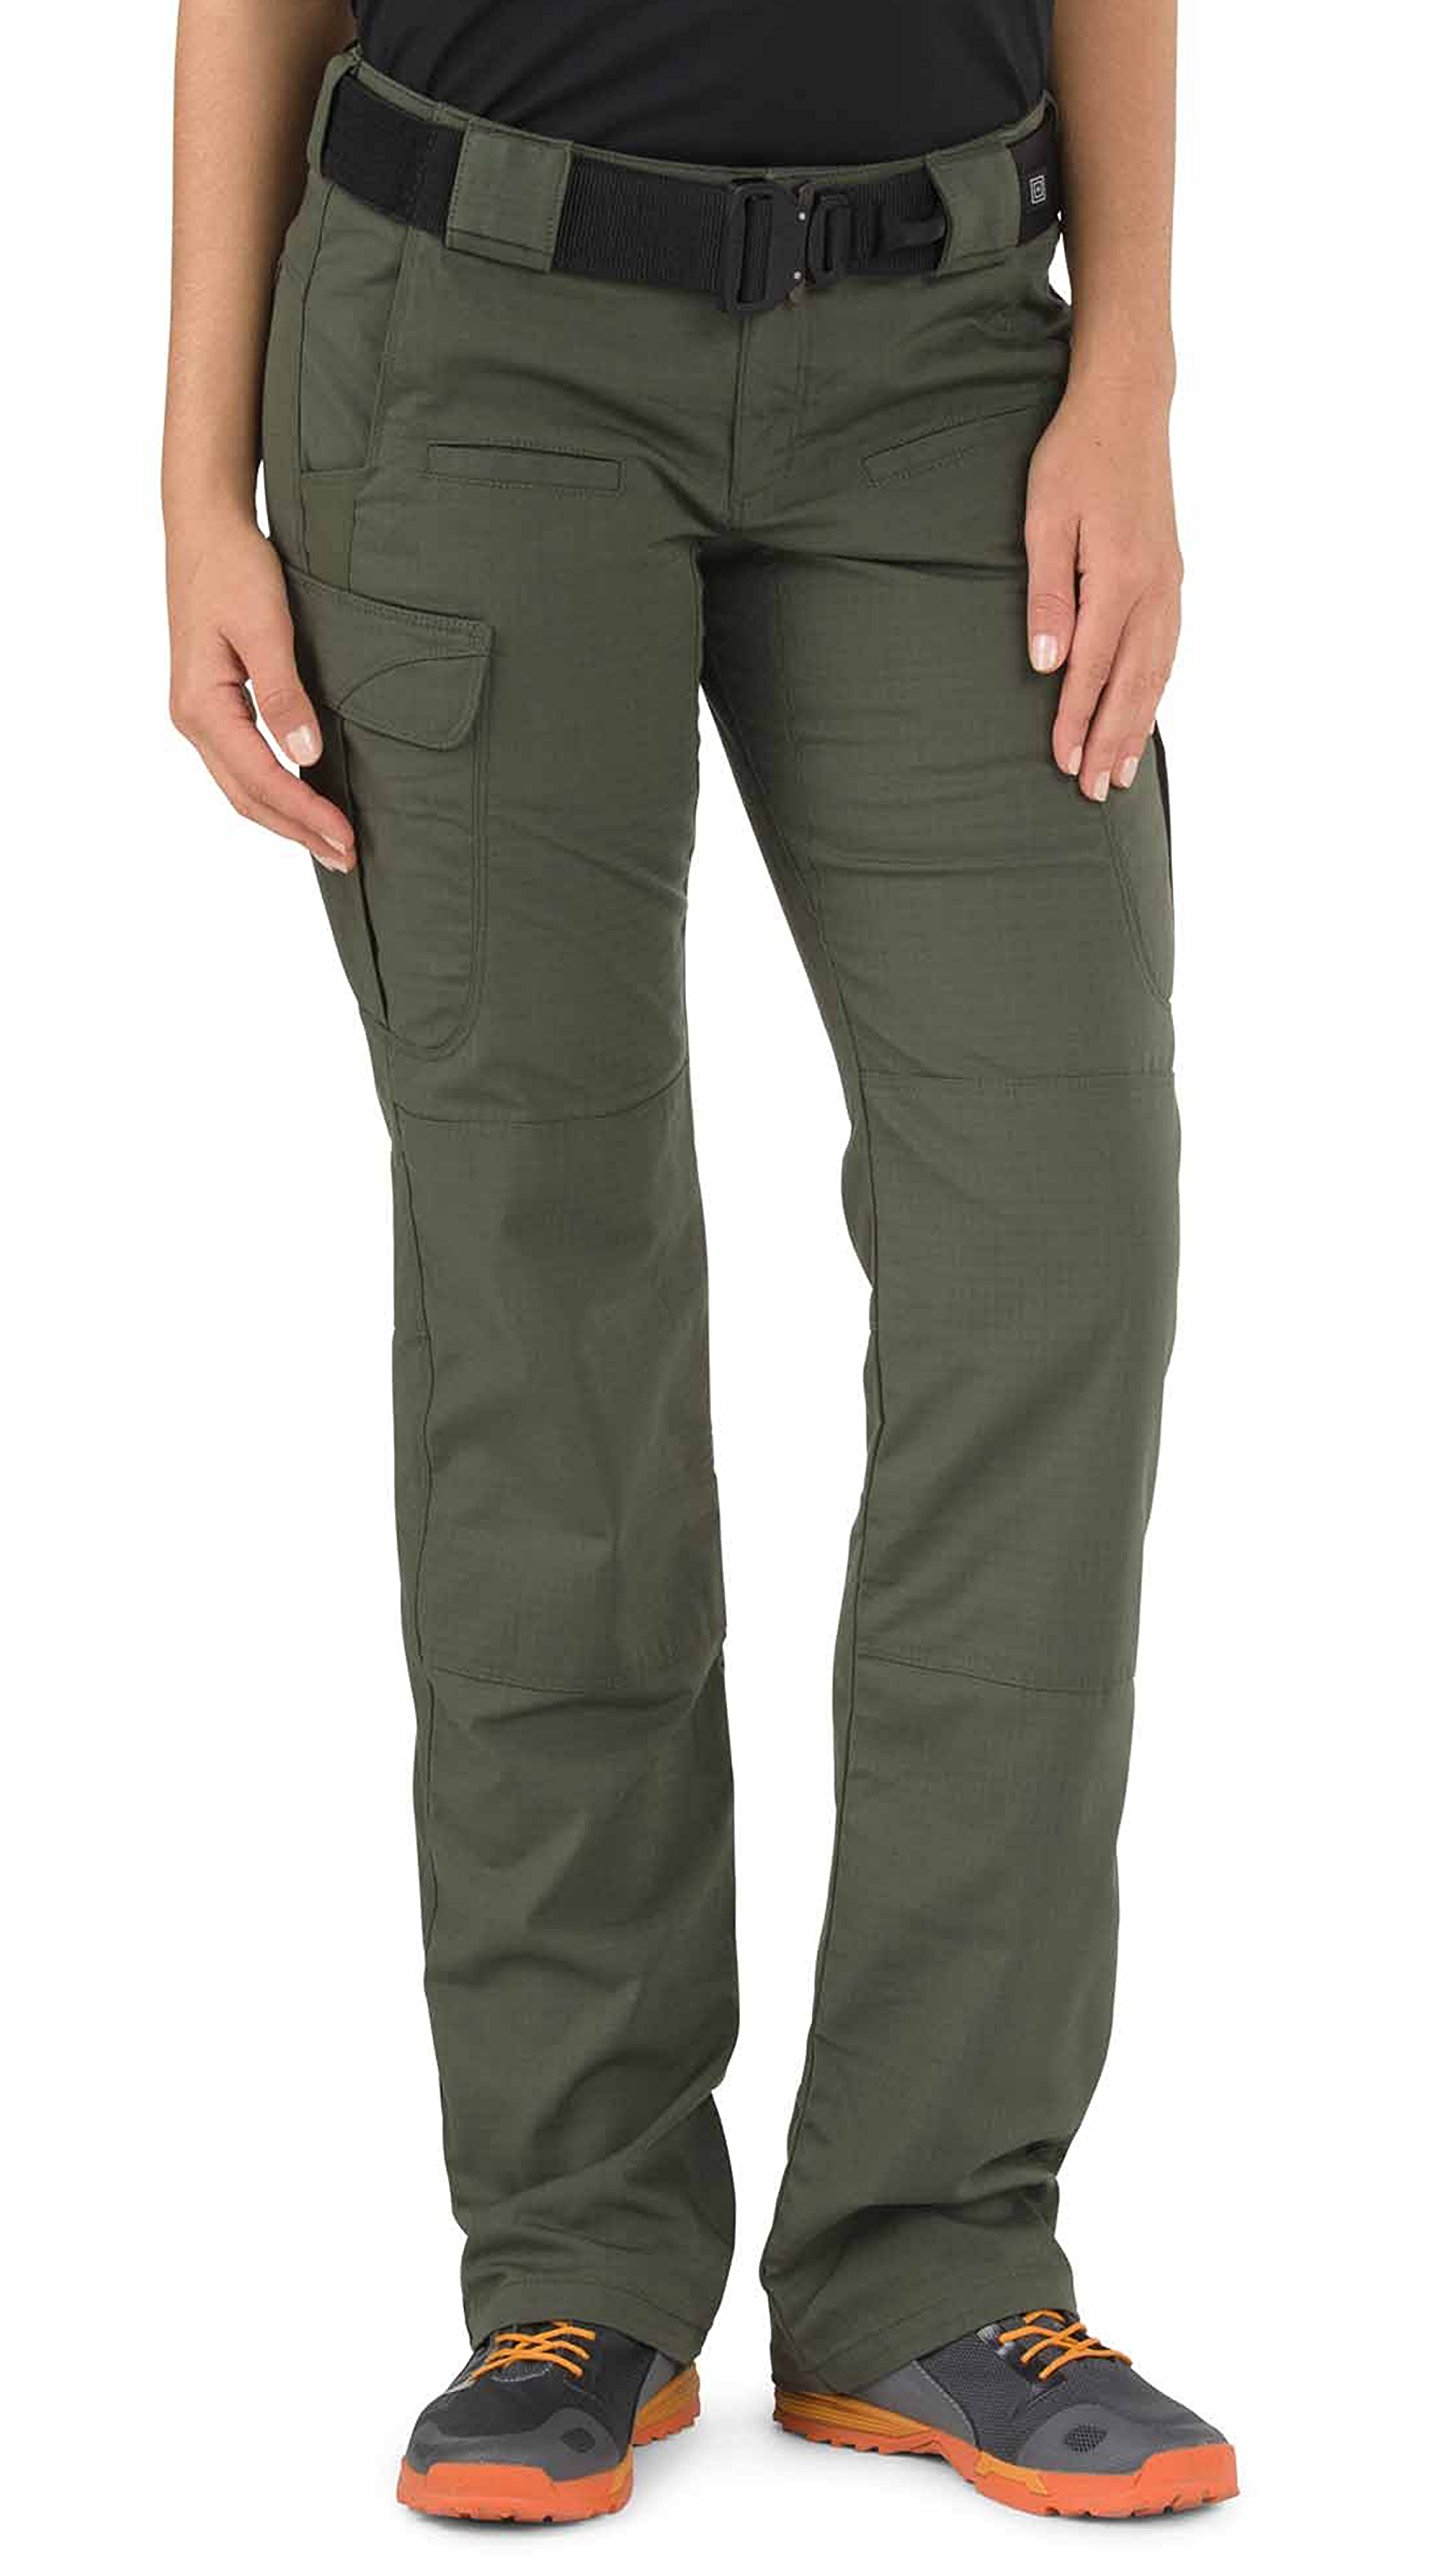 5.11 Tactical Women's Covert Cargo Styke Pant by 5.11